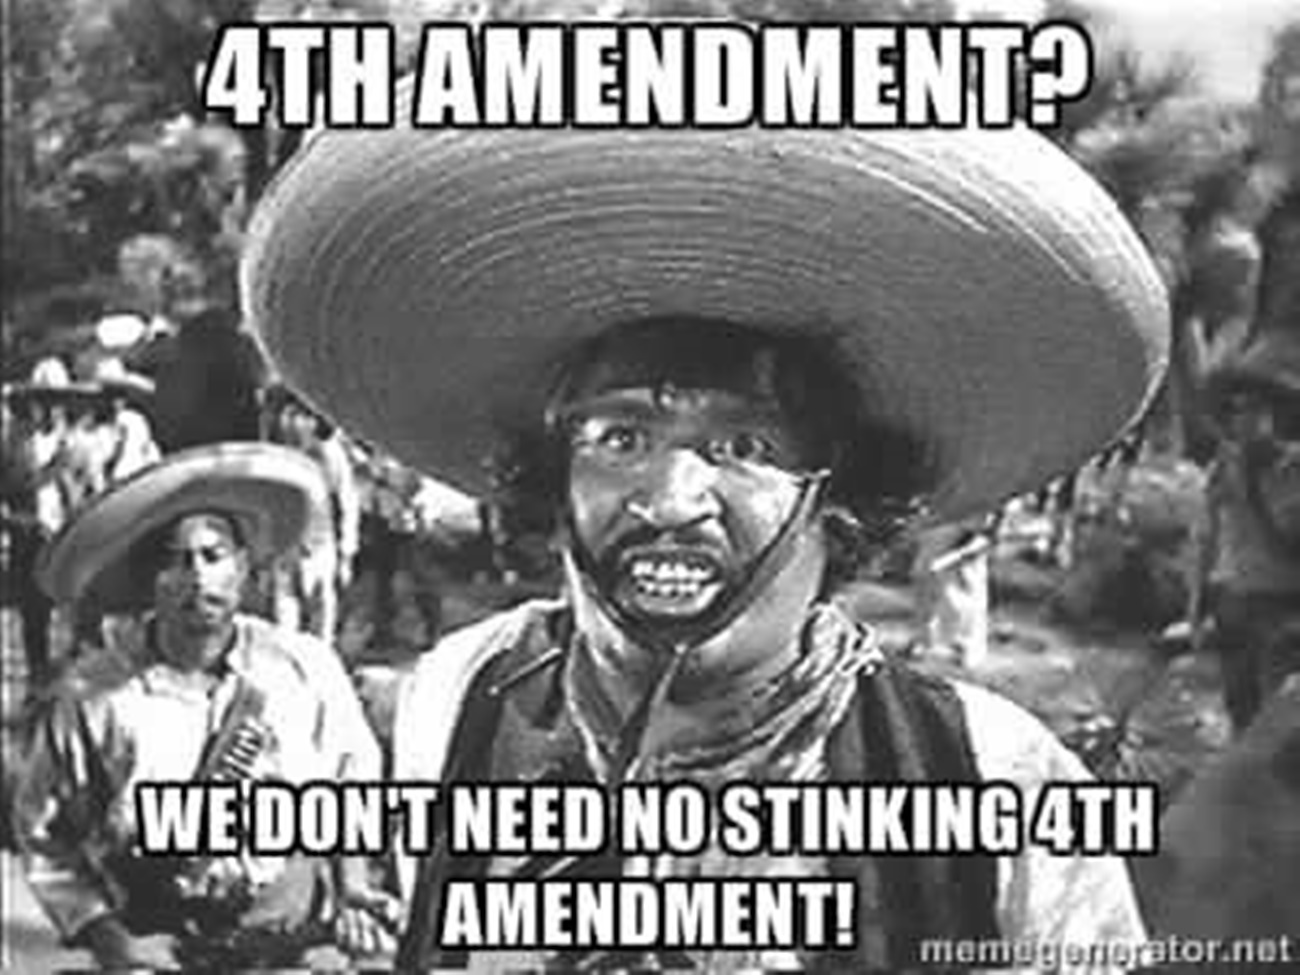 15-0604 4th Amendment